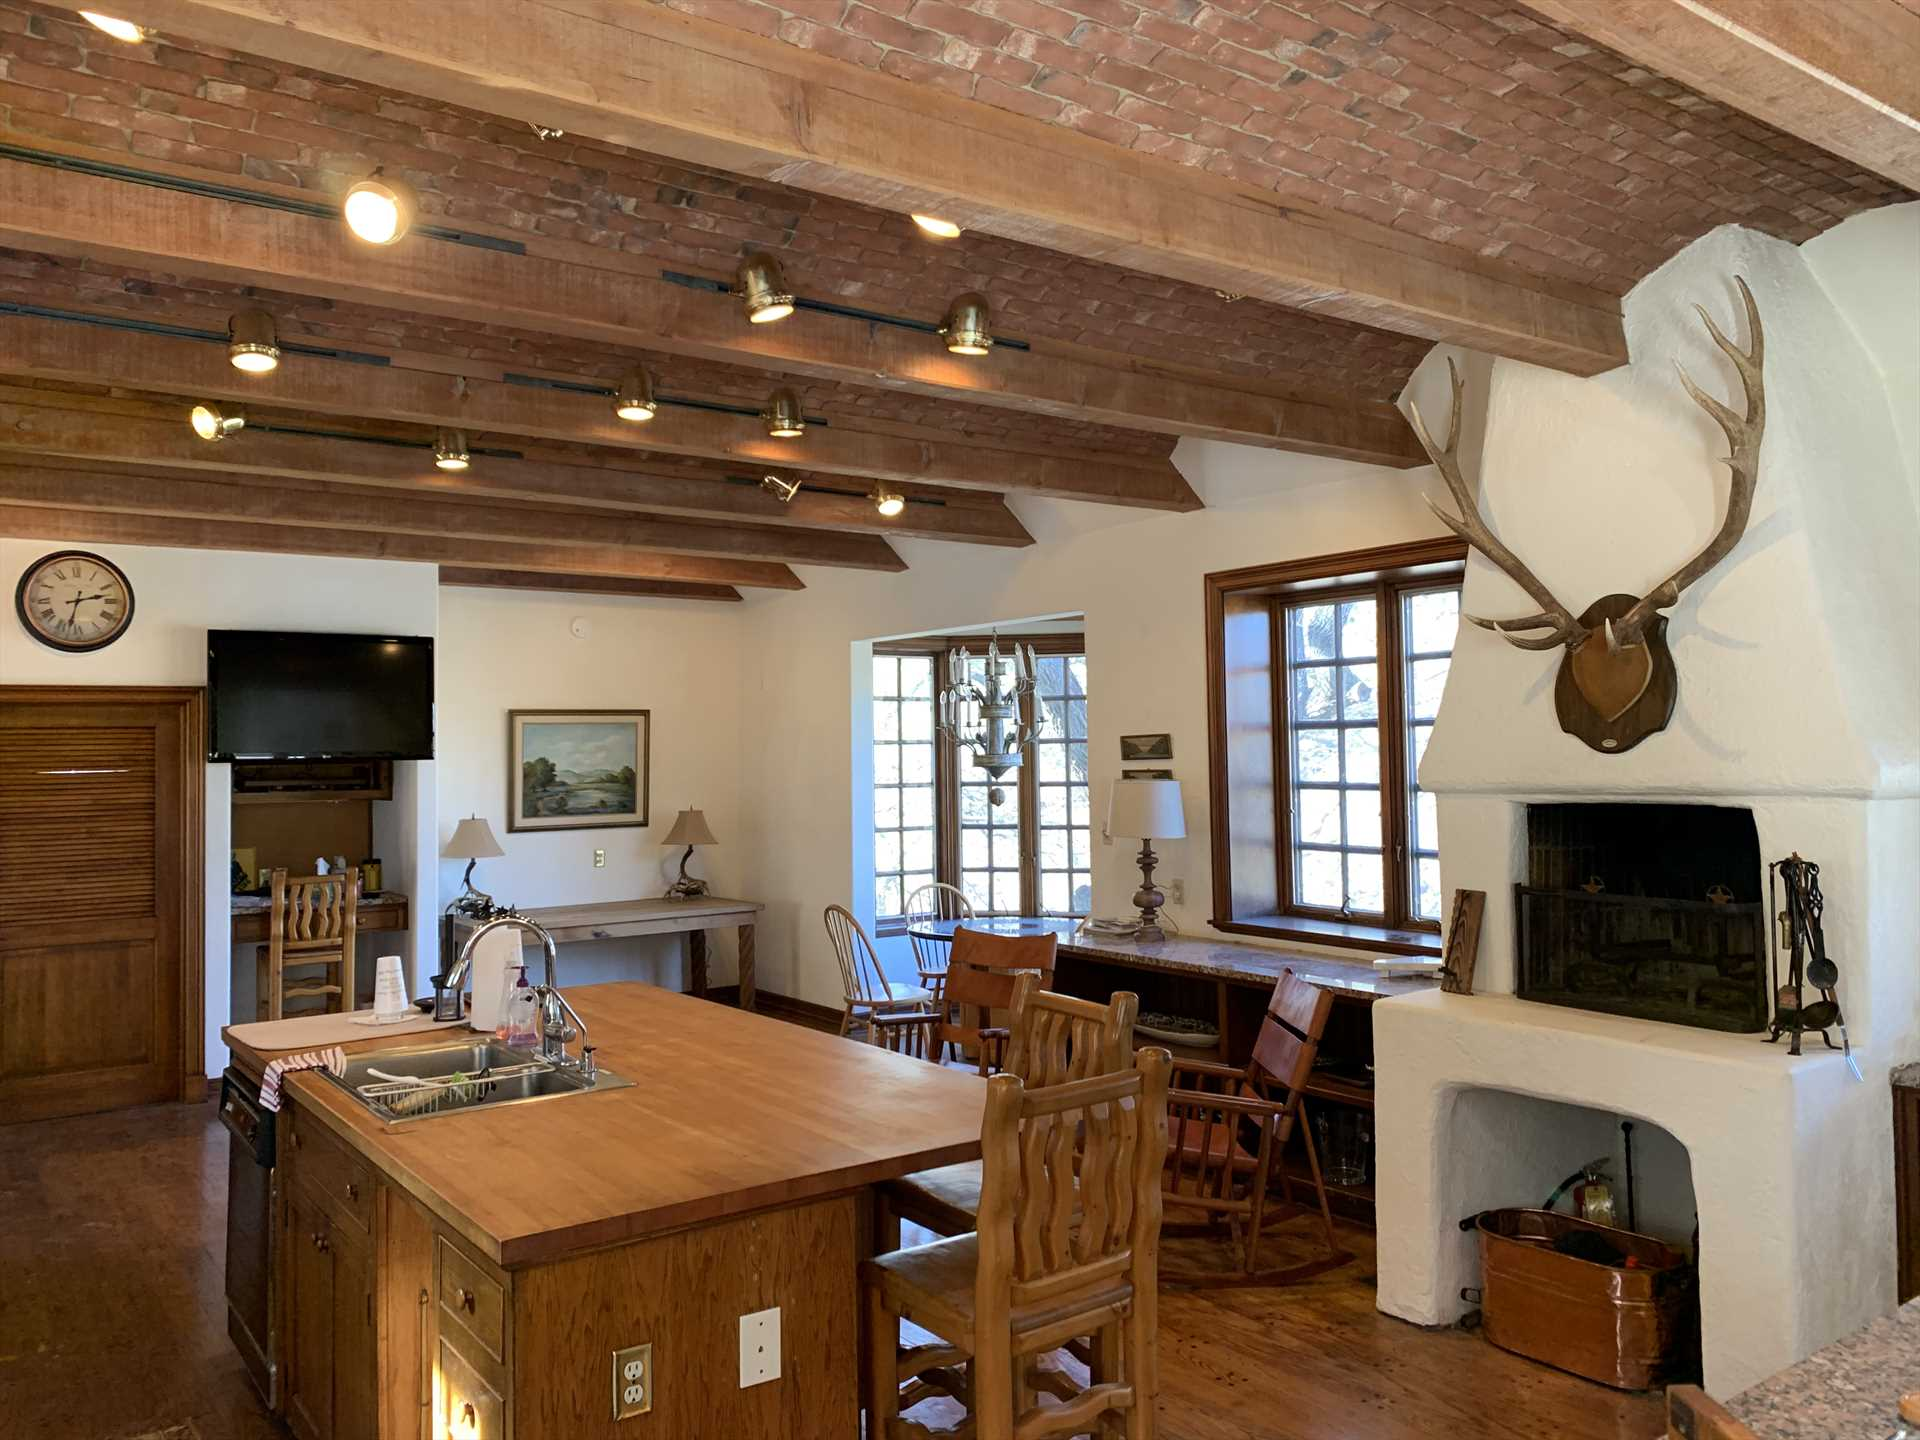 Folks can chat while they cook! Right next to the kitchen is a cozy seating area, and even a fireplace.